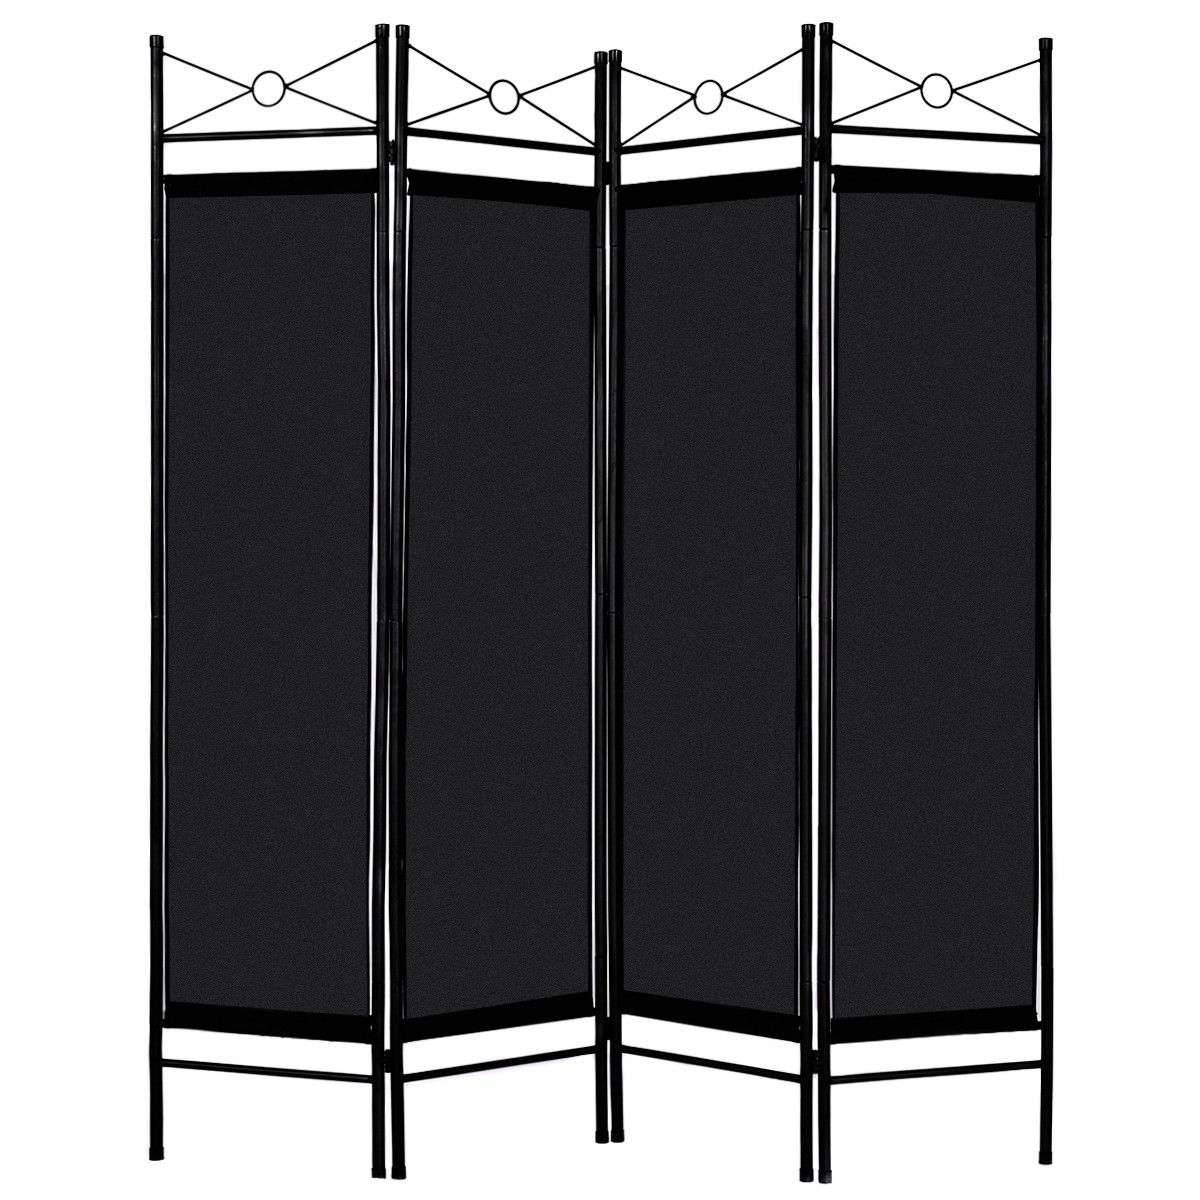 Costway Black 4 Panel Room Divider Privacy Screen Home Office Fabric